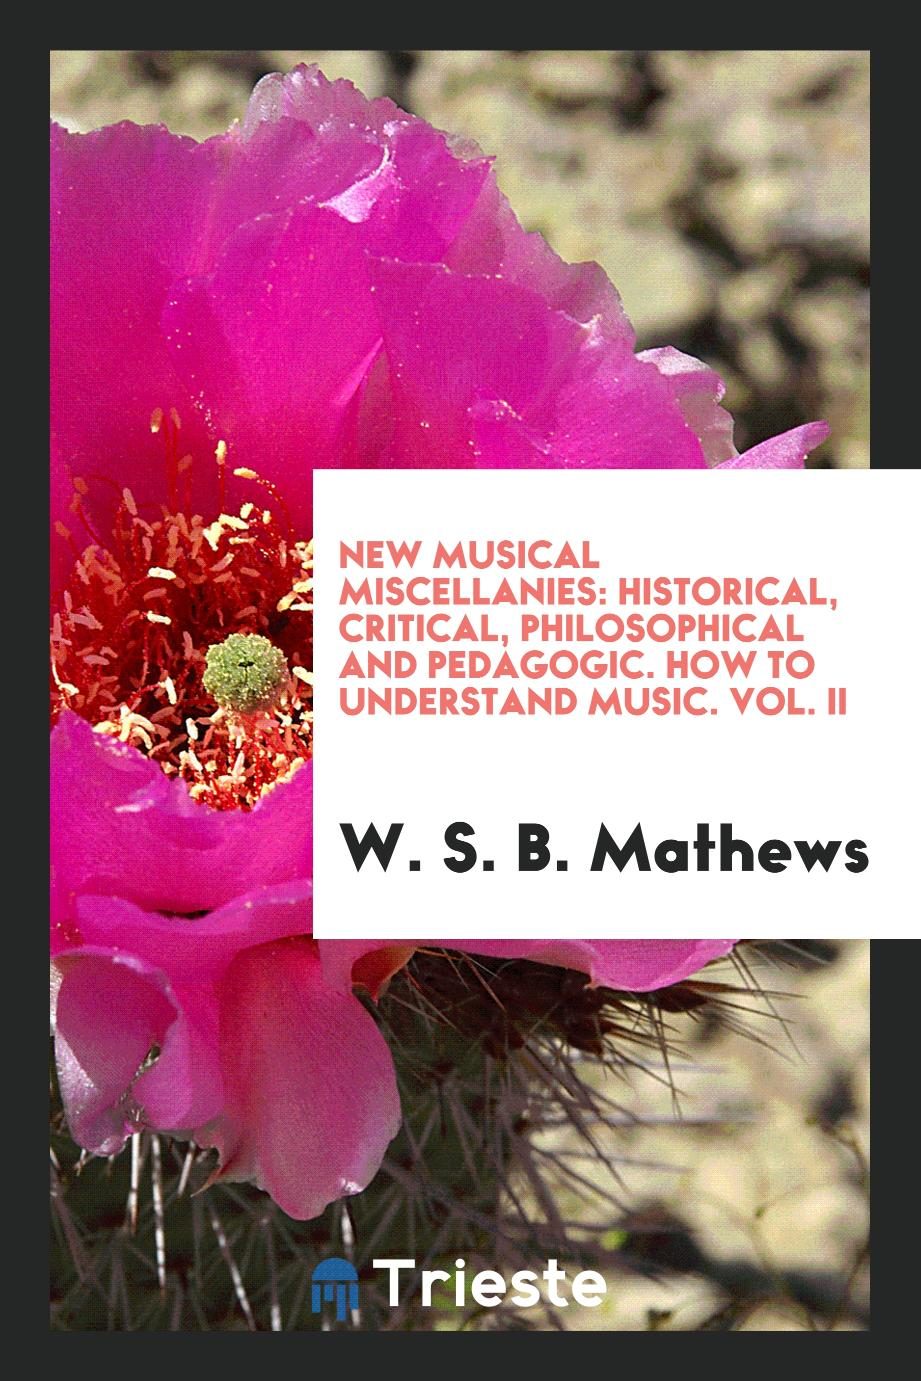 New Musical Miscellanies: Historical, Critical, Philosophical and Pedagogic. How to Understand Music. Vol. II